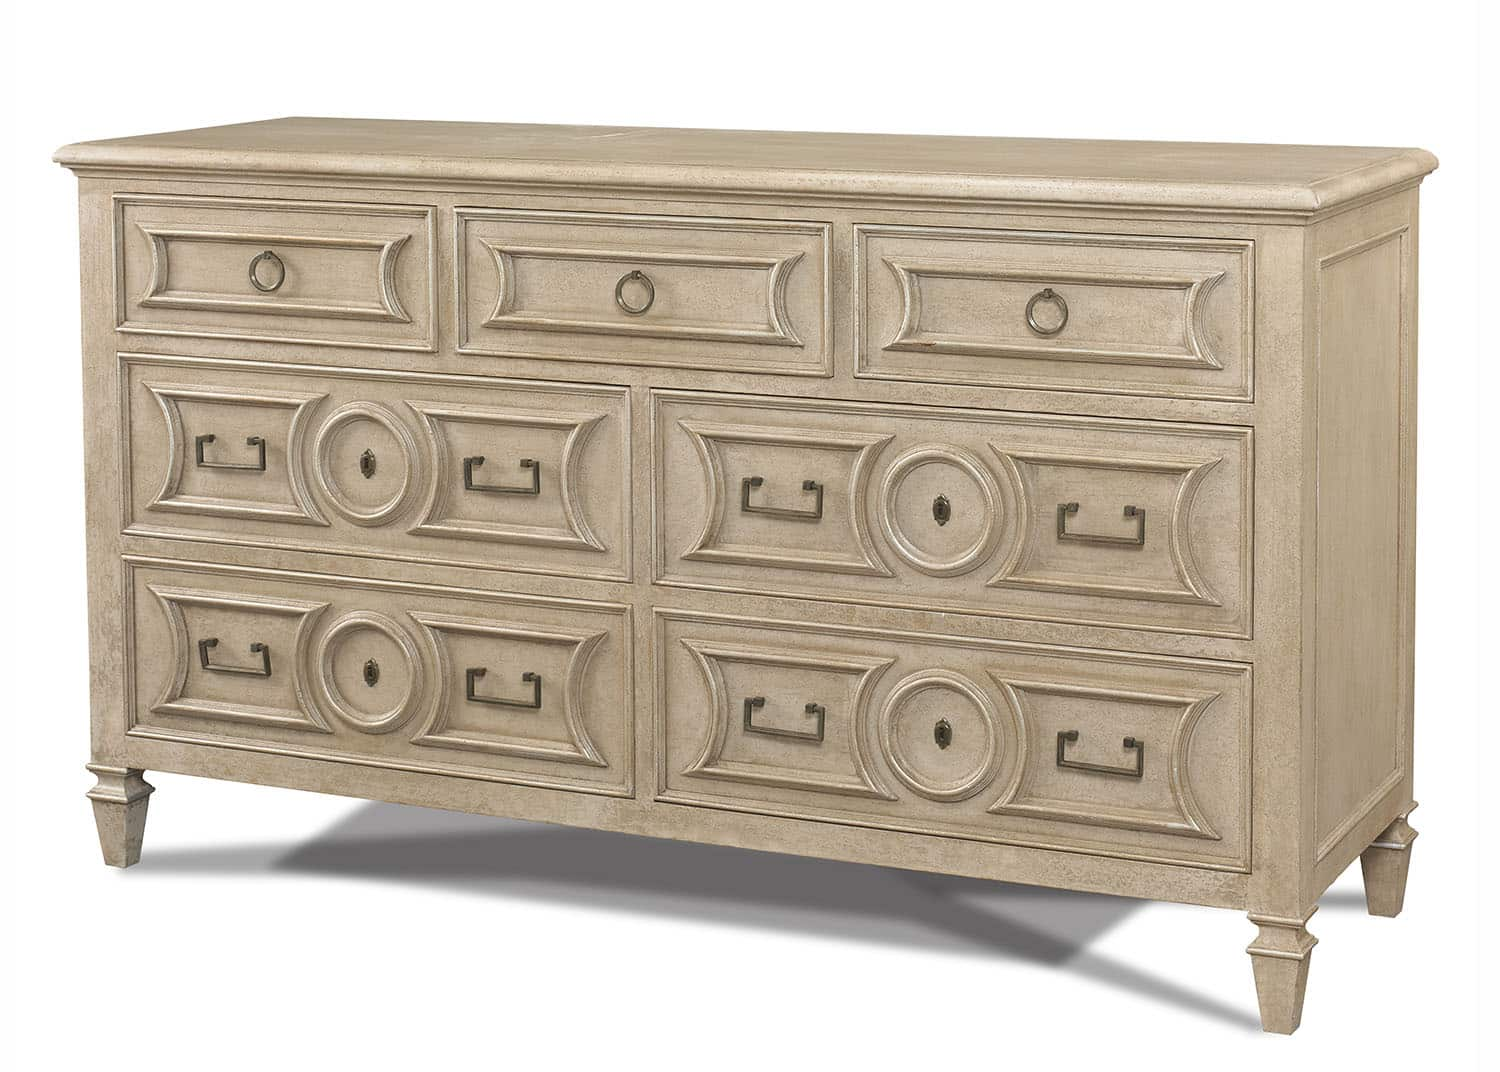 Sanremo commode mobilart decor high end furniture for Meuble a montreal